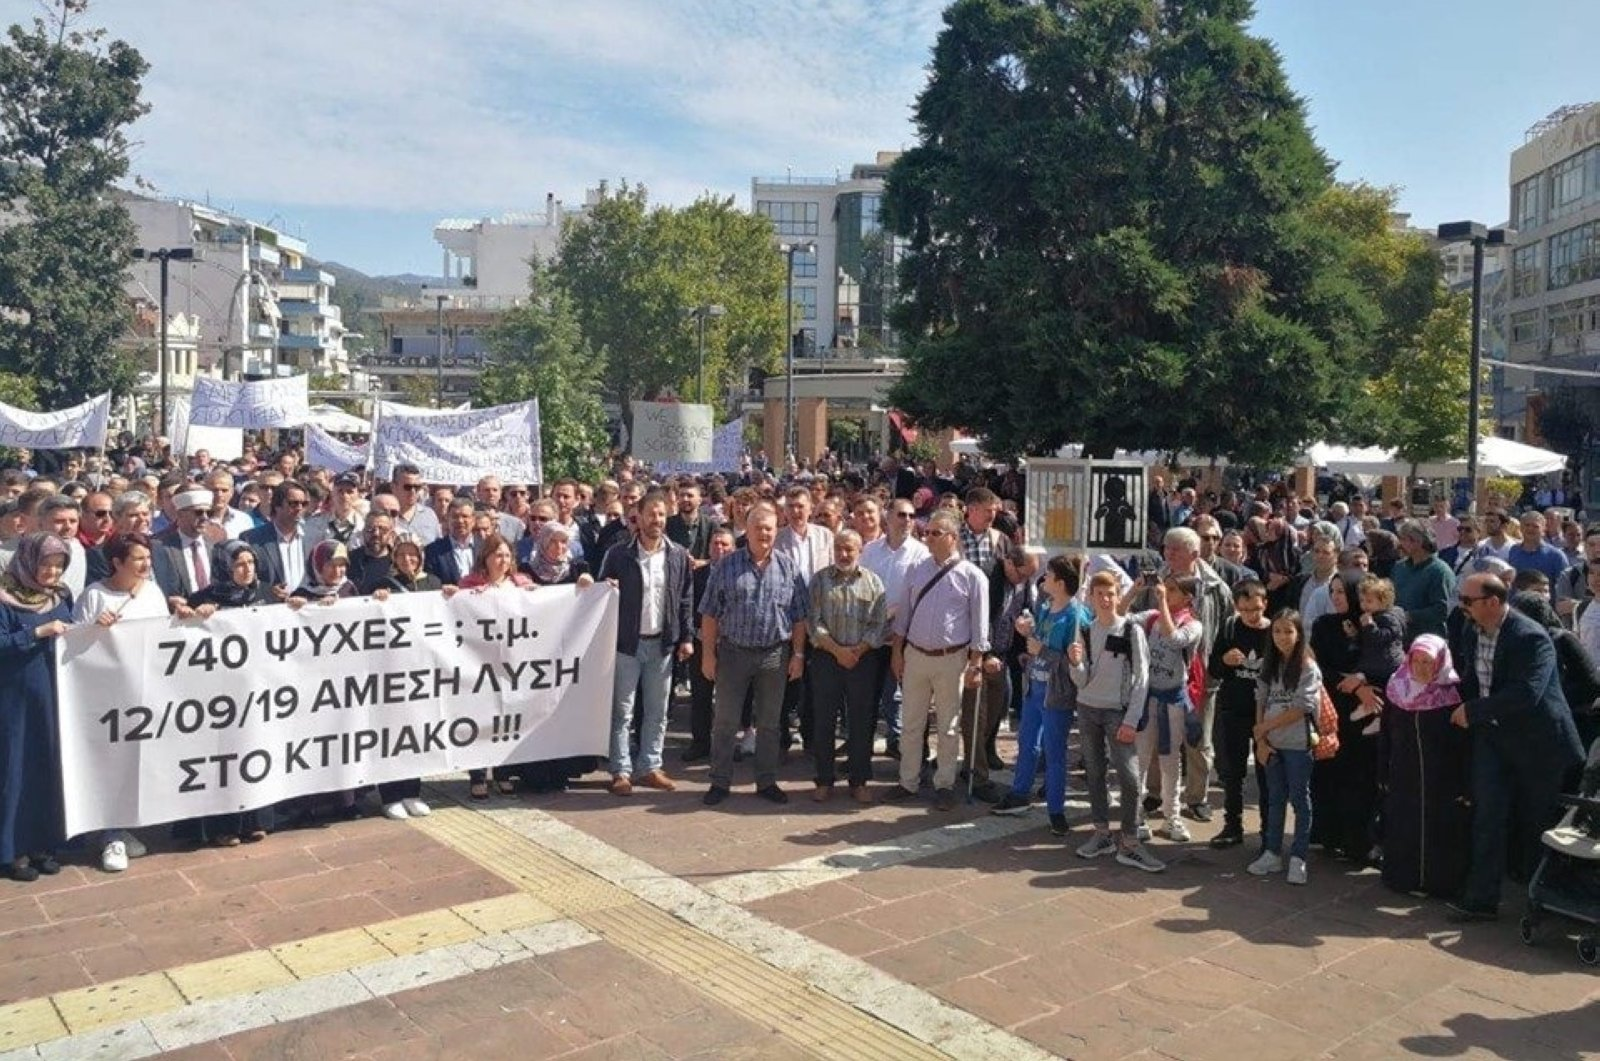 Turks in Western Thrace's Xanthi province protest Greek government's assimilation policies in education, Sept.24, 2019.